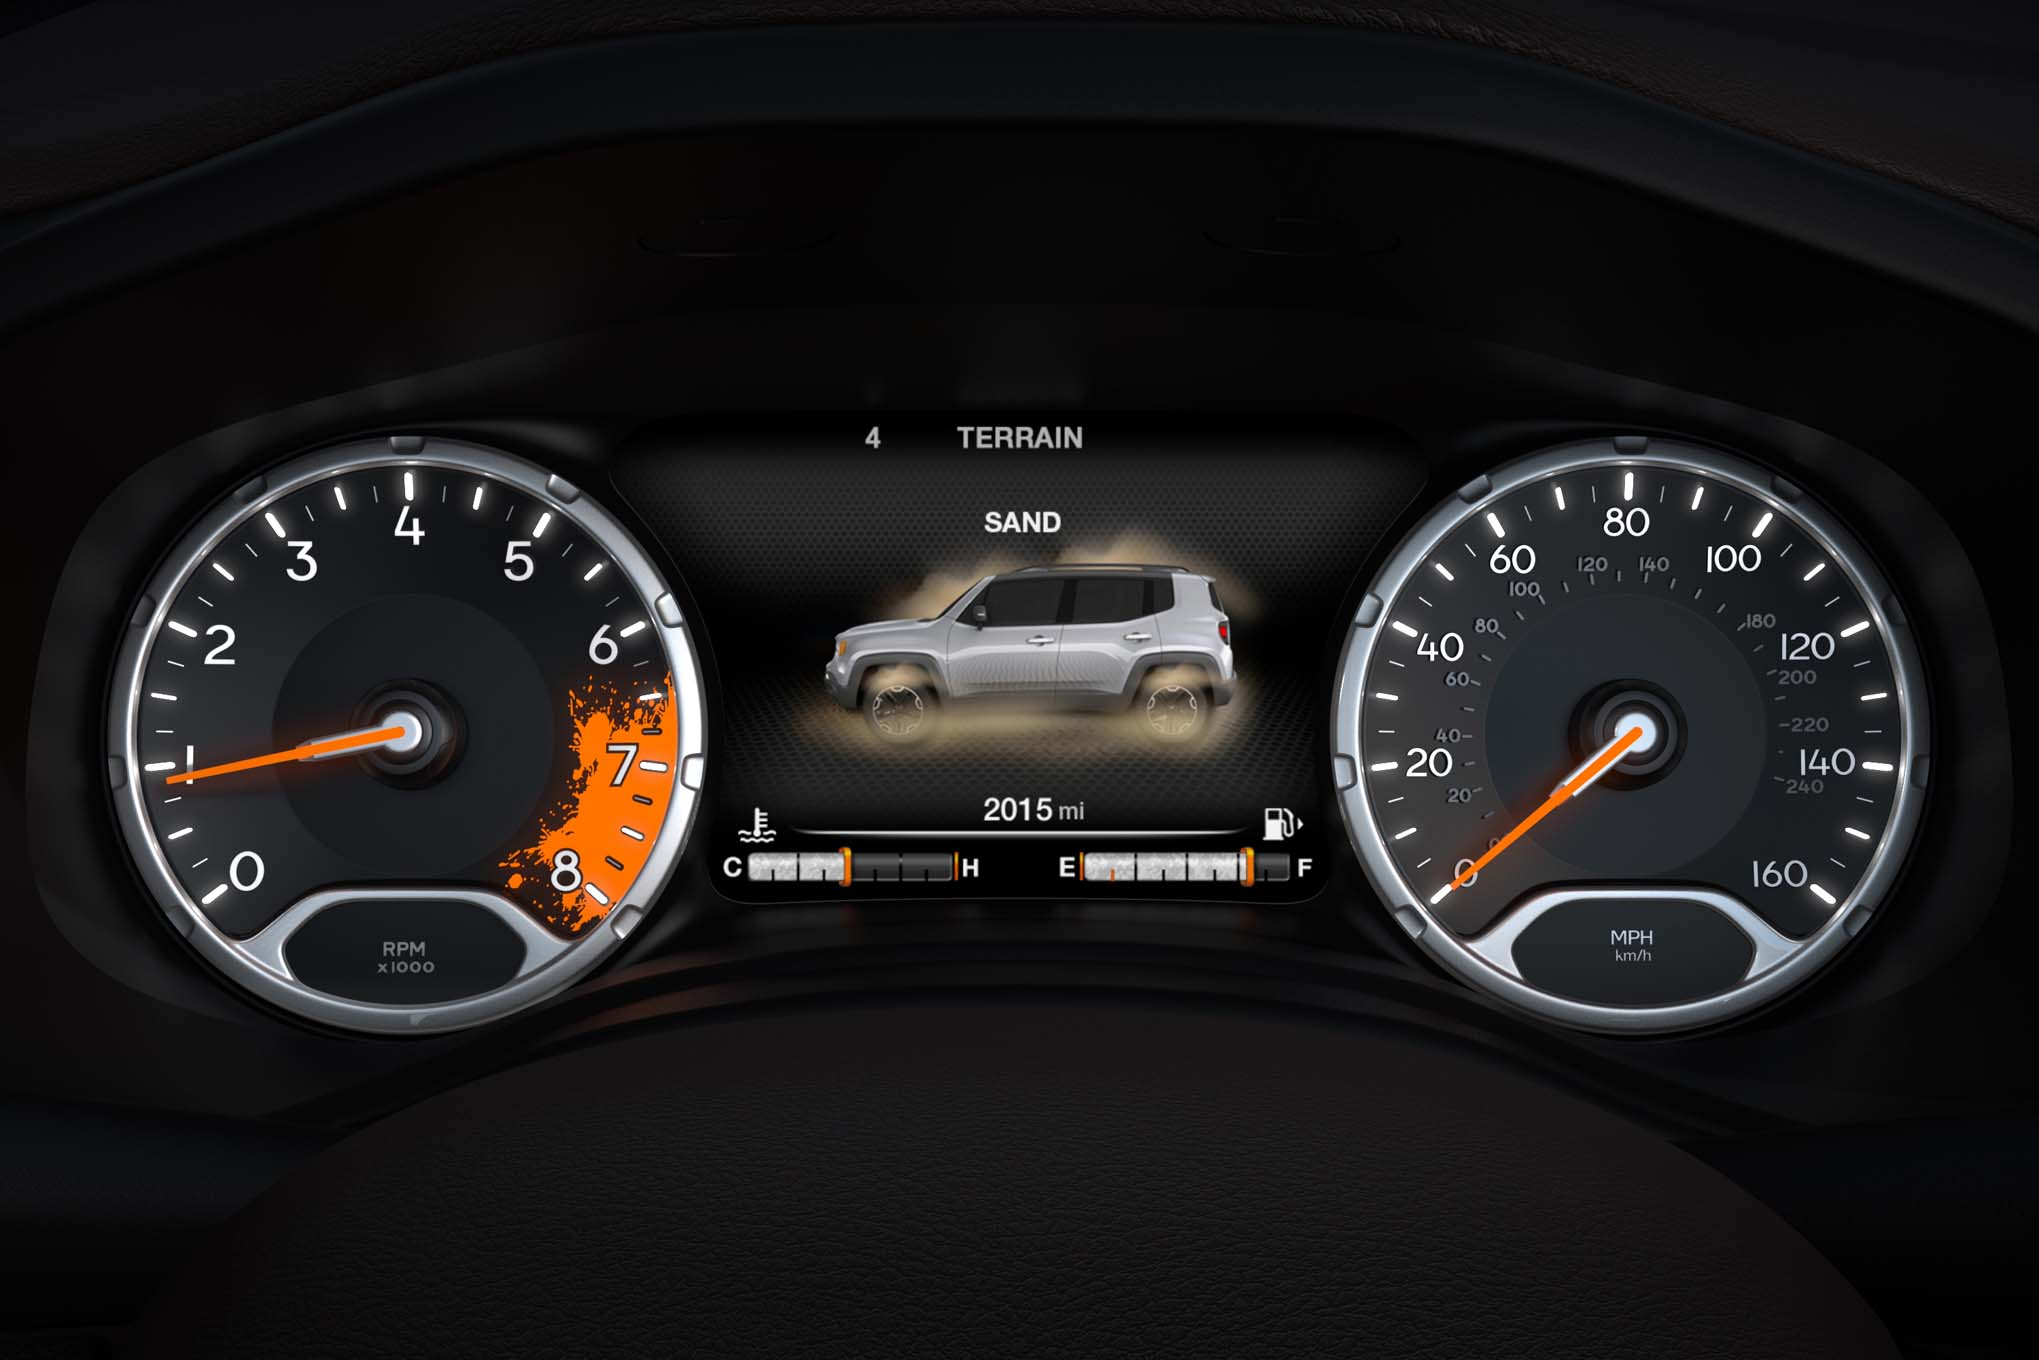 2015 Jeep Renegade Limited instrument cluster